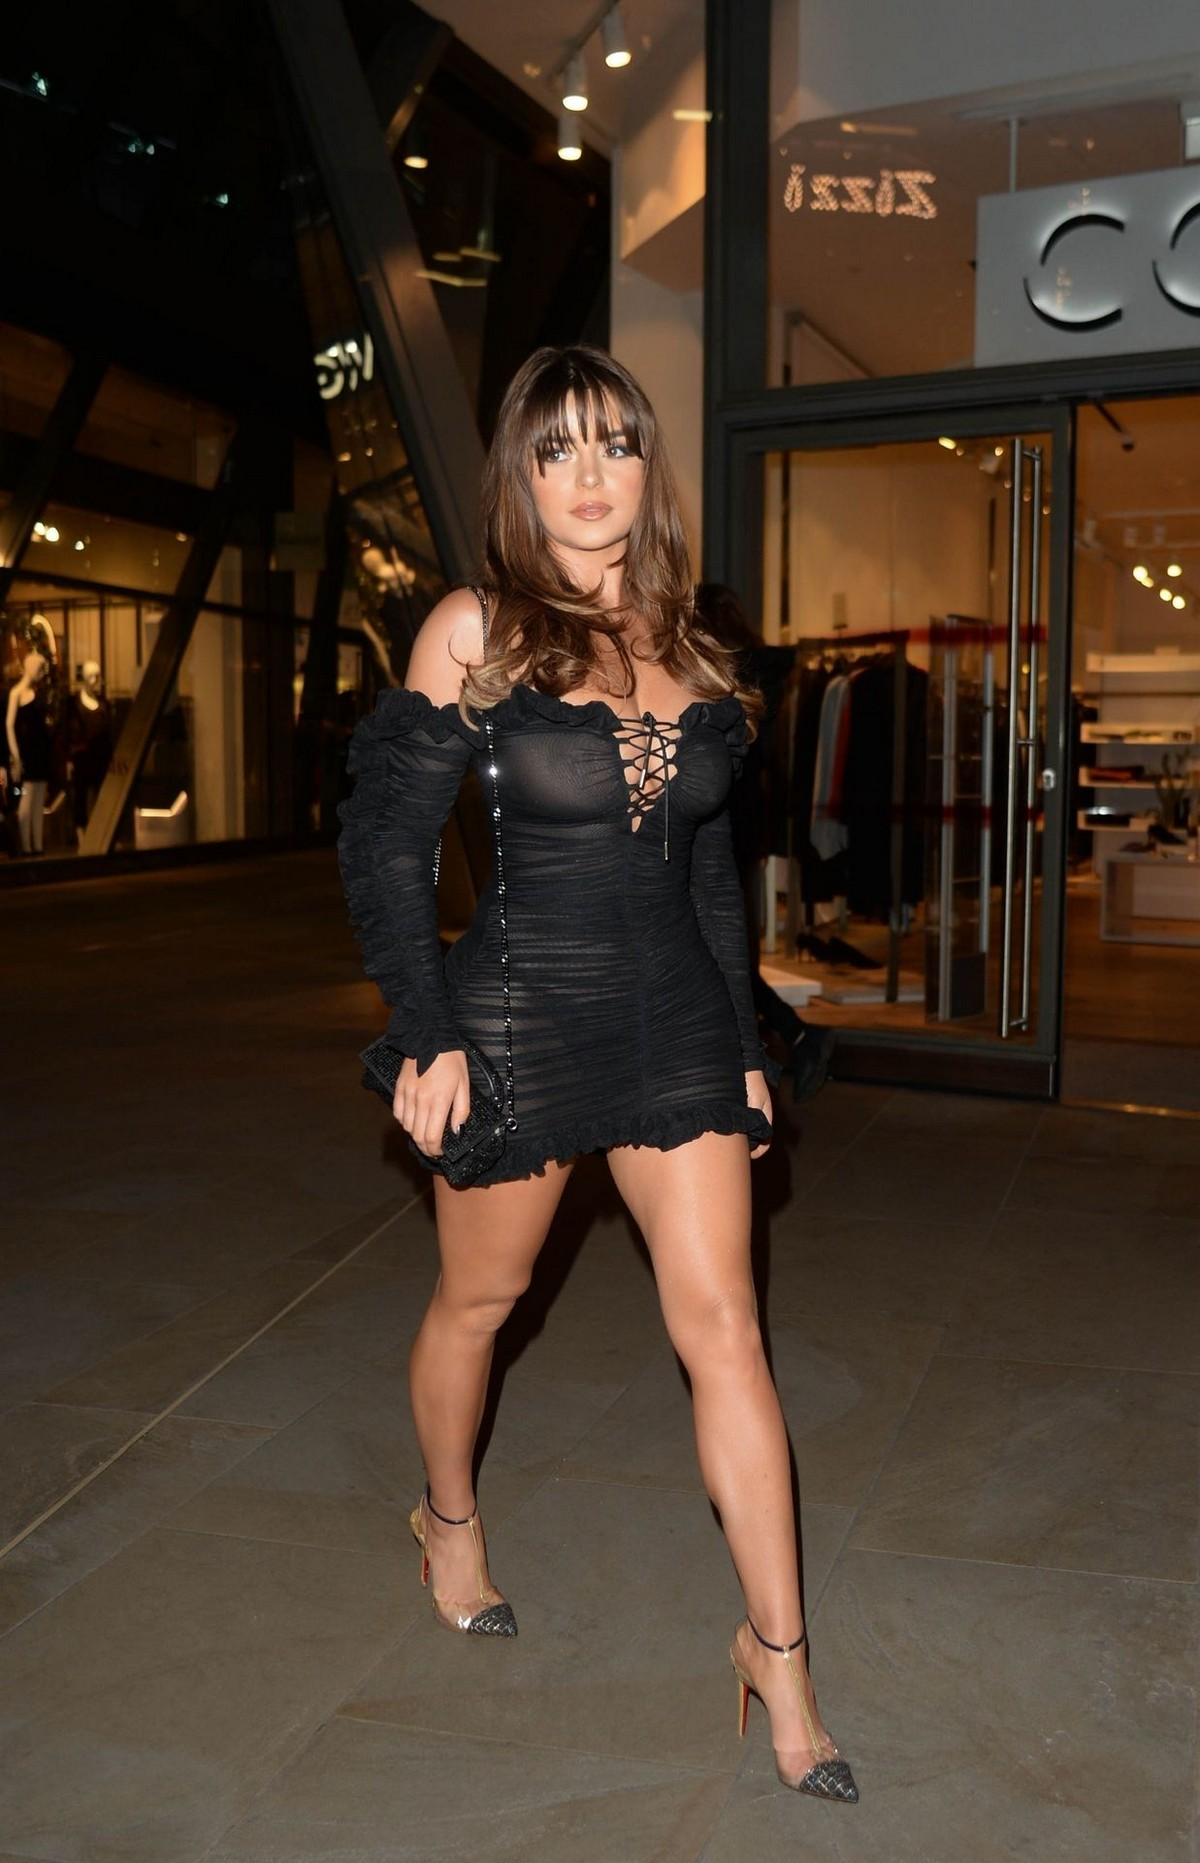 Demi Rose Mawby seen in Stylish Short Dress at The Skinny Tan Choc Range launch party in Madison, London 2019/11/19 6